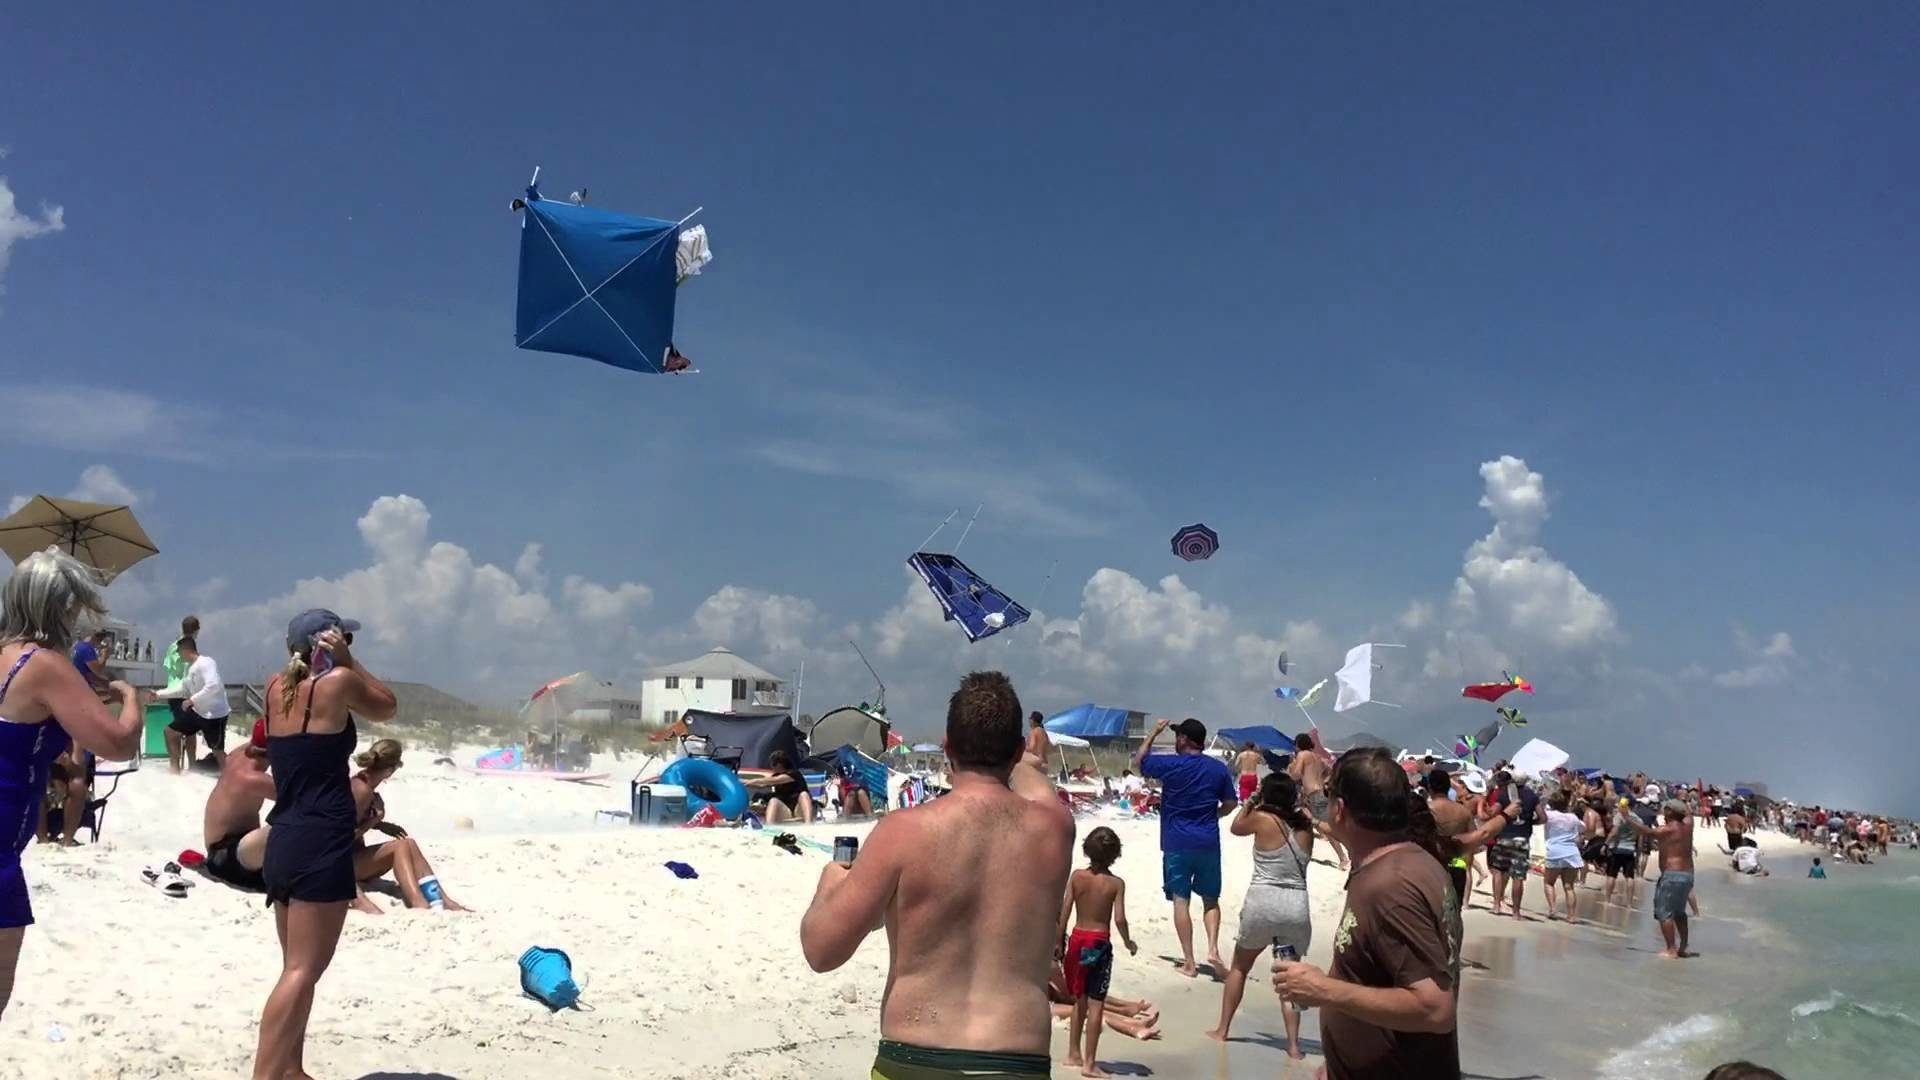 1920x1080 Blue Angels Doing a Low Fly-By Over Pensacola Beach Causing Tents &  Umbrellas to Fly Into the Air